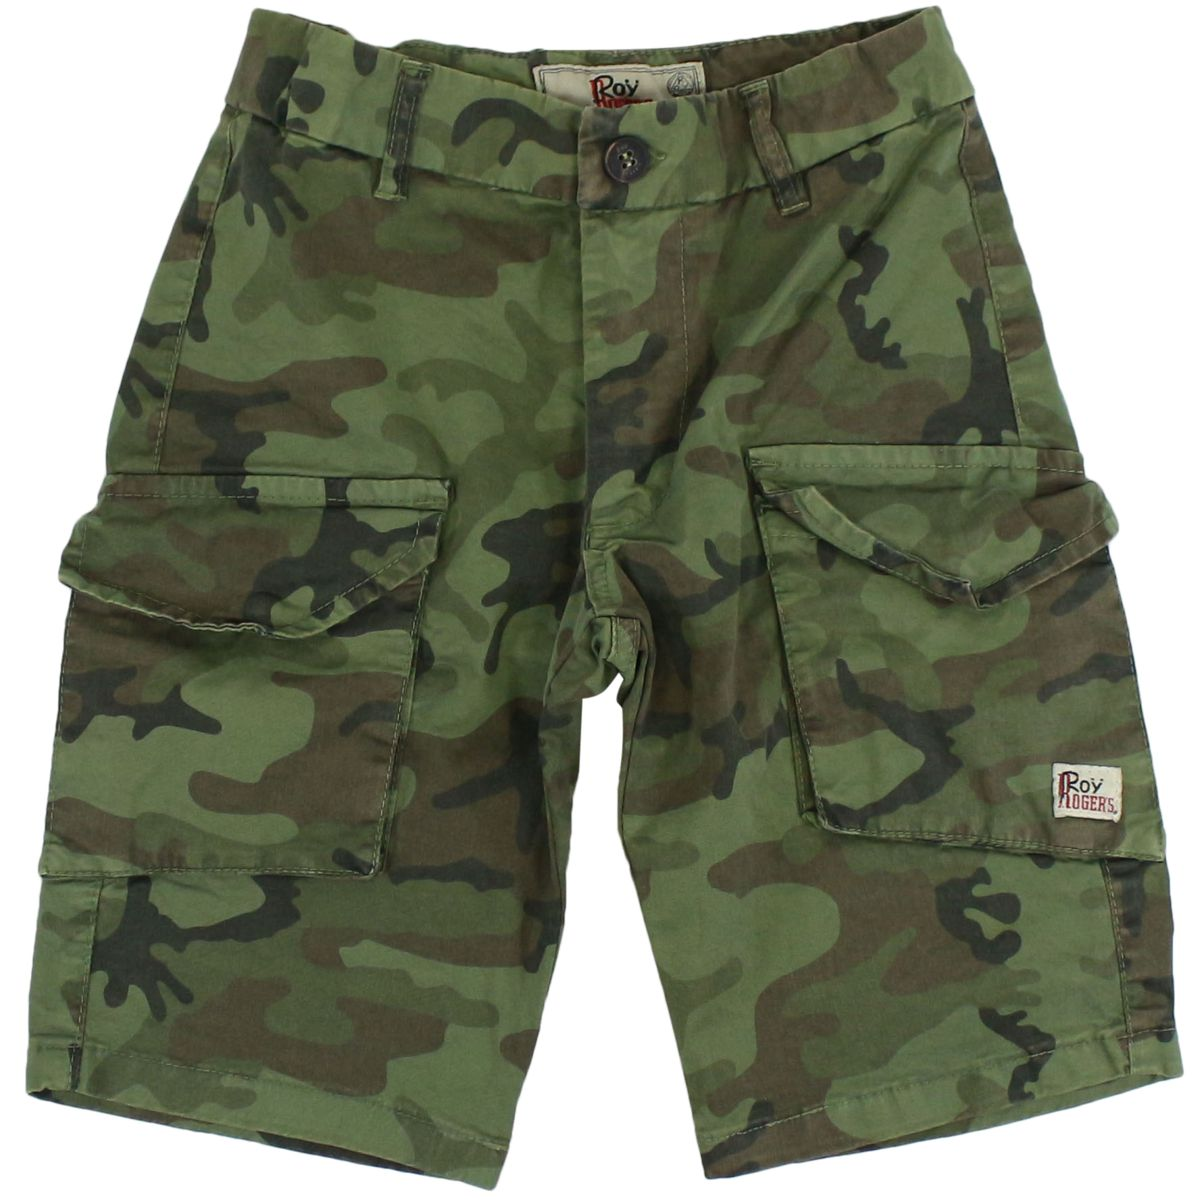 Cotton short with camouflage print Green Roy Roger's